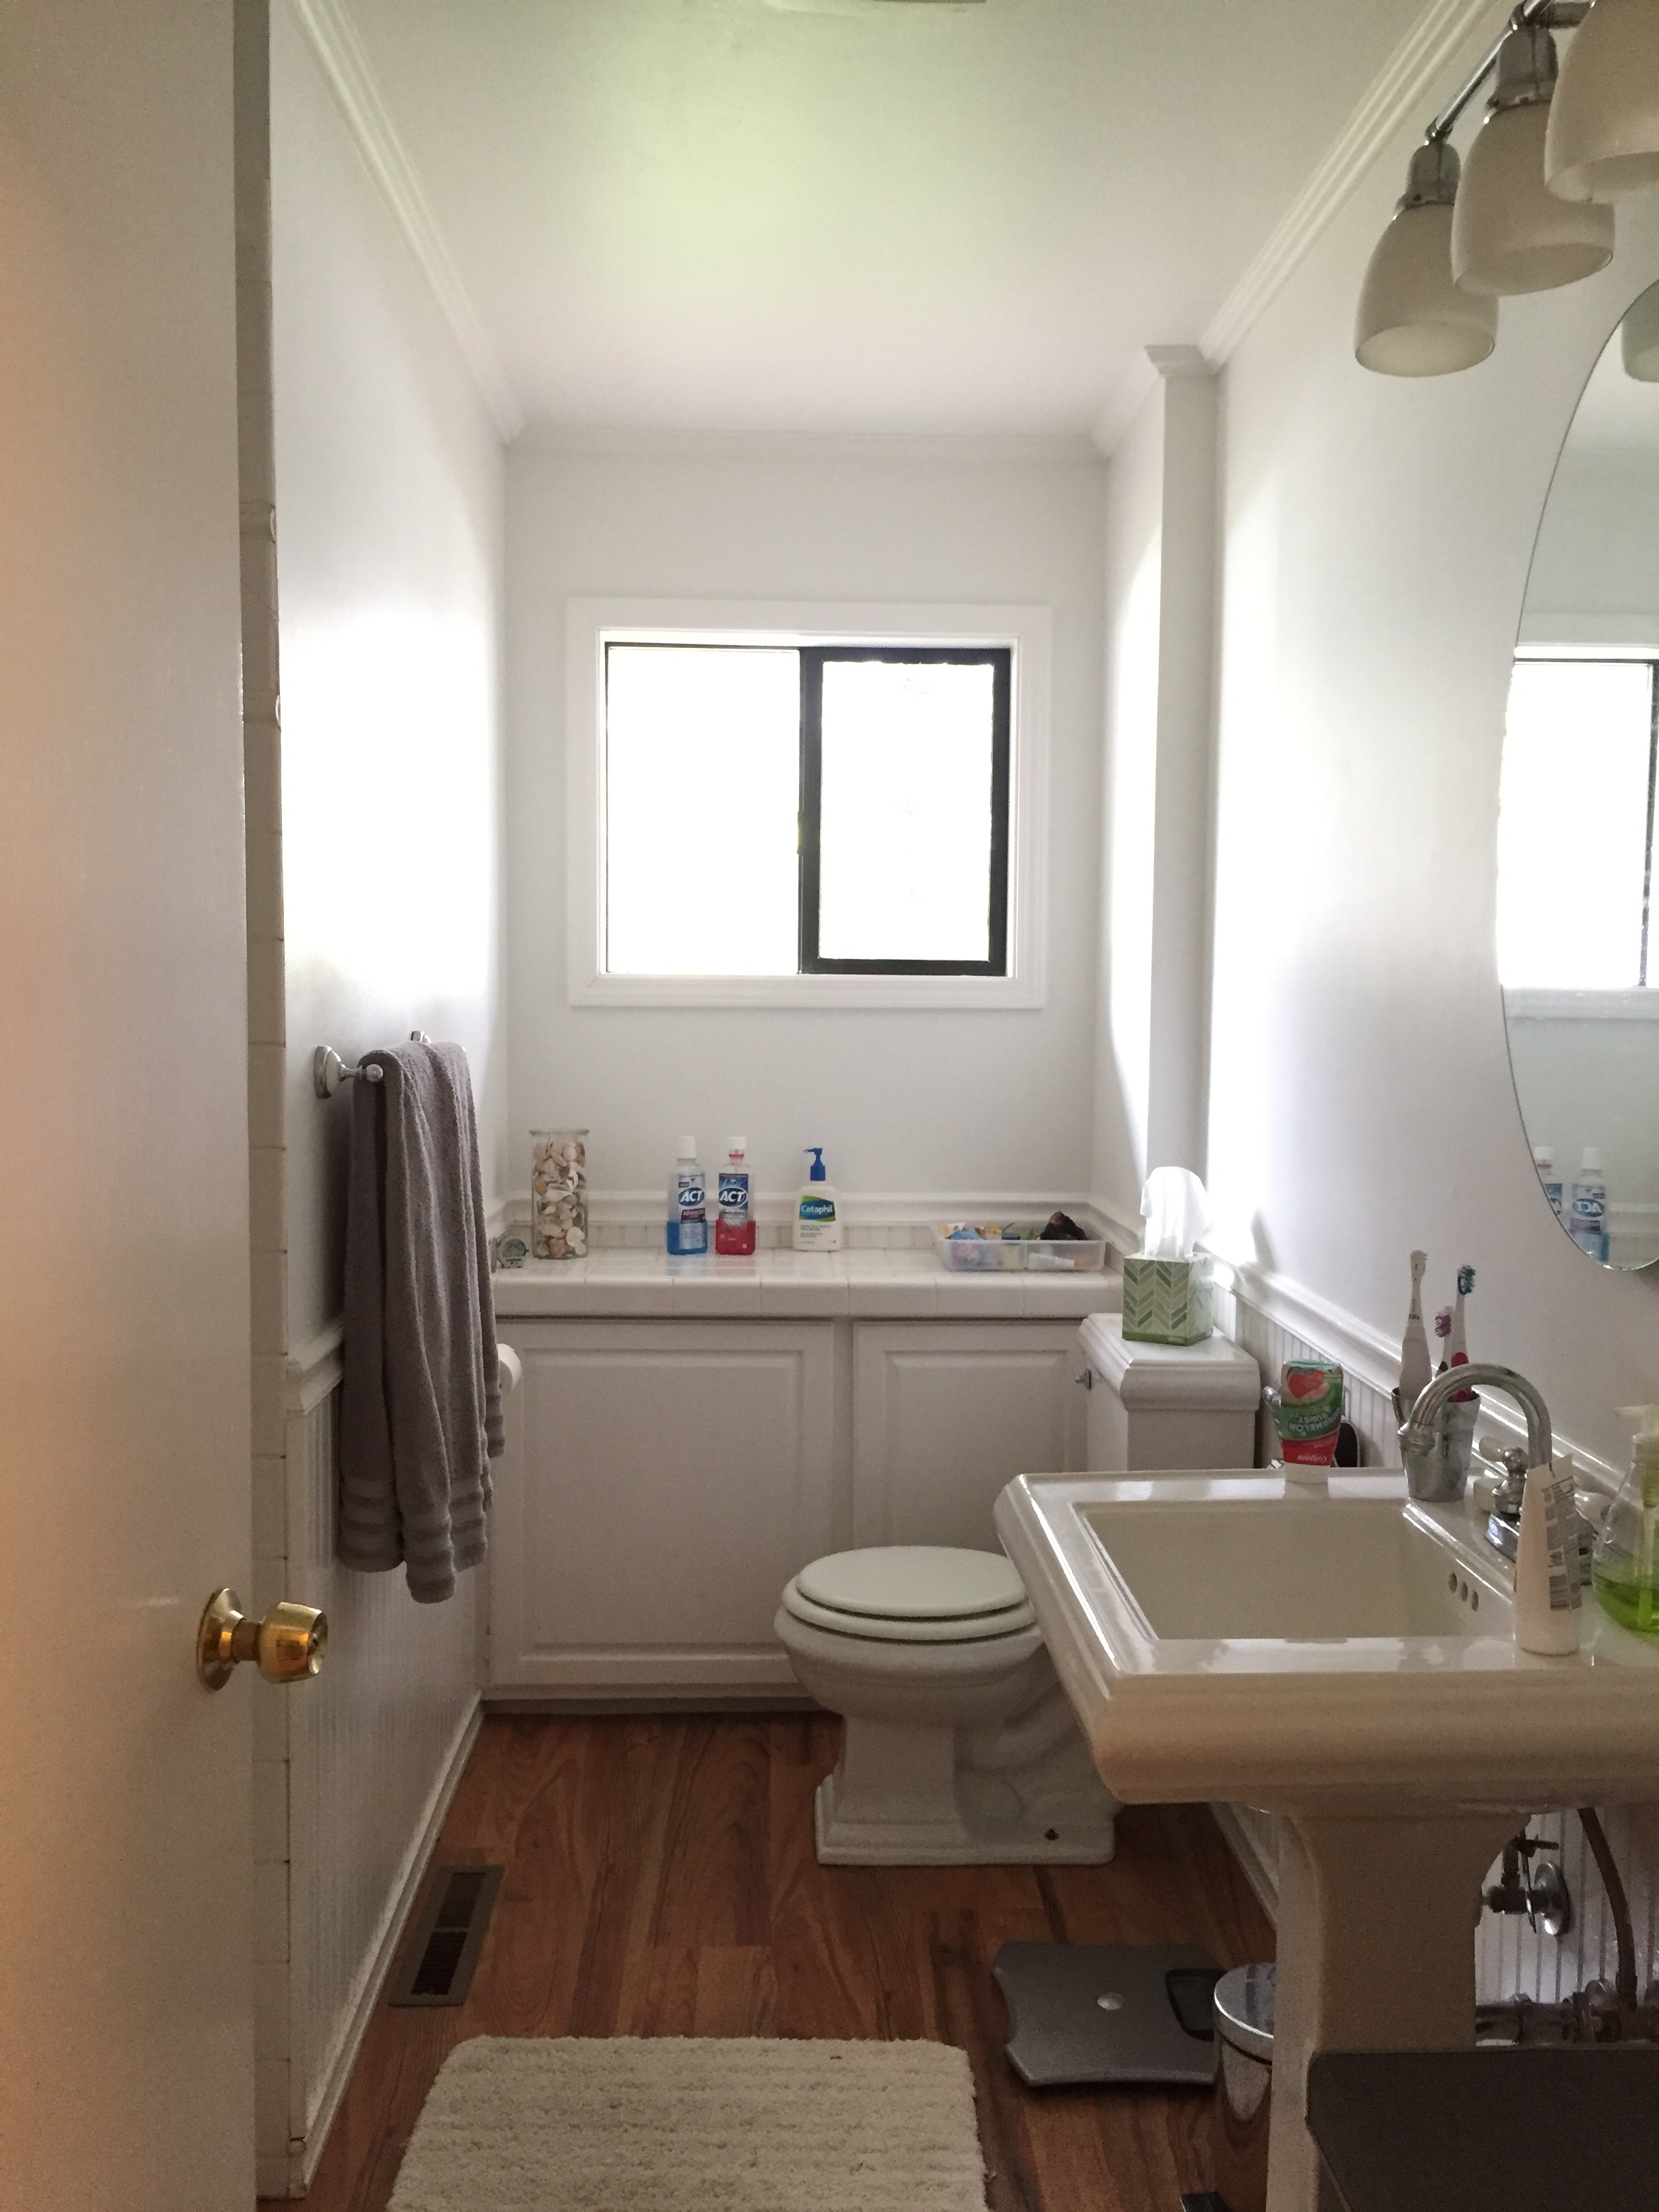 - We bumped out the wall to add a bathtub beneath the window (the current is behind the door), added a double sink vanity and adjusted the window to center on the tub. There were so many rounds of remodeling on this home, from crown molding to a 2000s remodel. It felt good to bring the home back to its original mid century charm with modern updates.